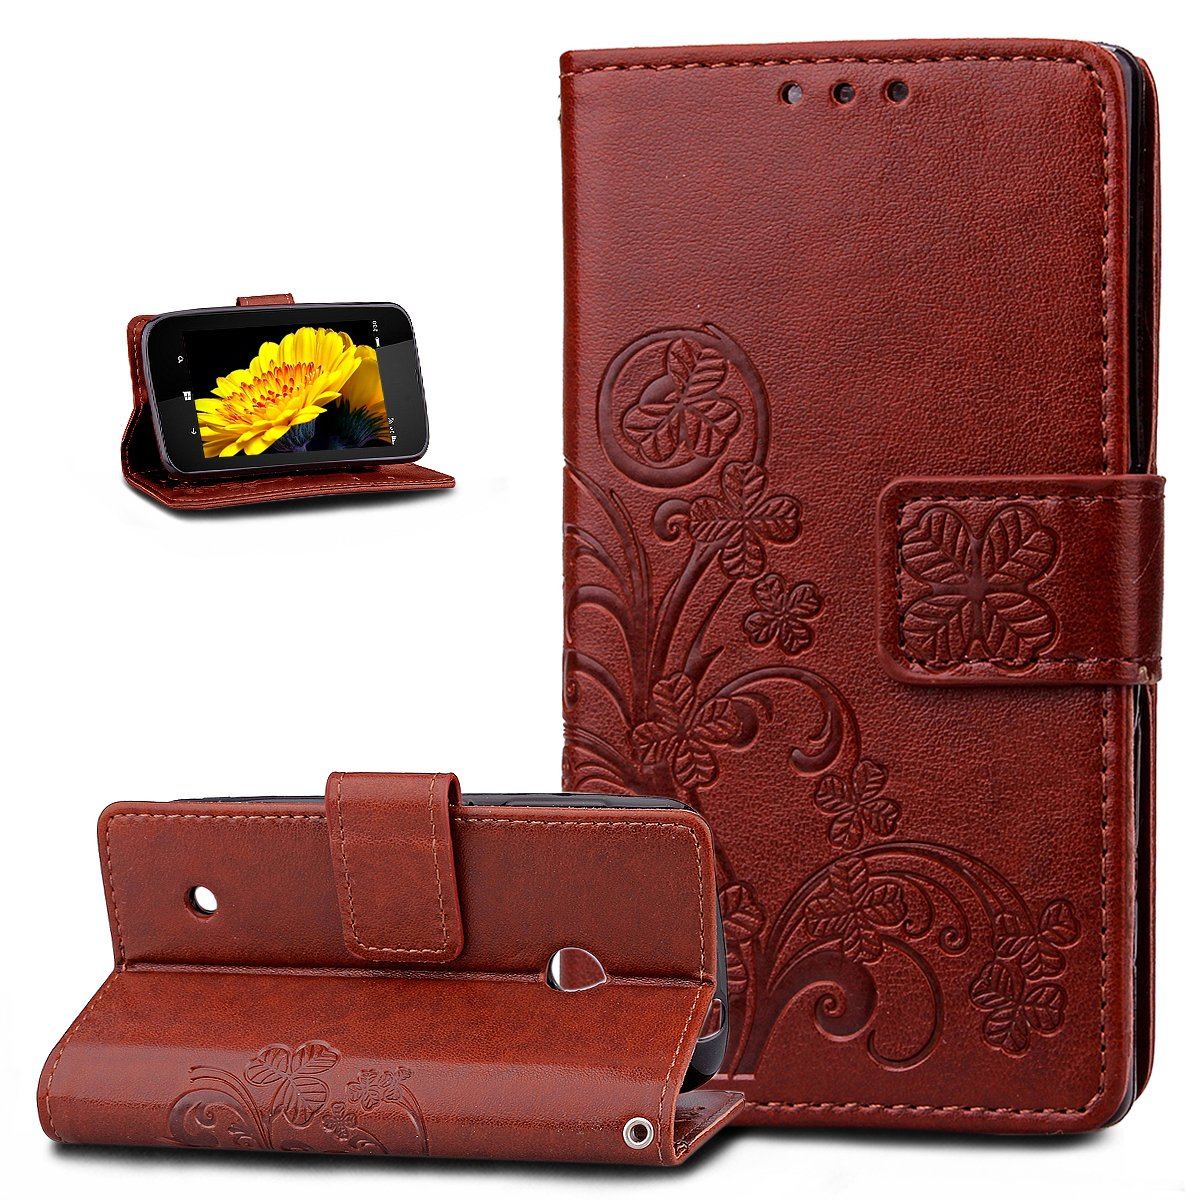 Nokia Lumia 530 Case, Nokia Lumia 530 Cover, ikasus Embossing Clover Flower Floral Pattern PU Leather Flip Fold Wallet Pouch Stand Credit Card ID Holders Case Cover for Nokia Lumia 530, Purple